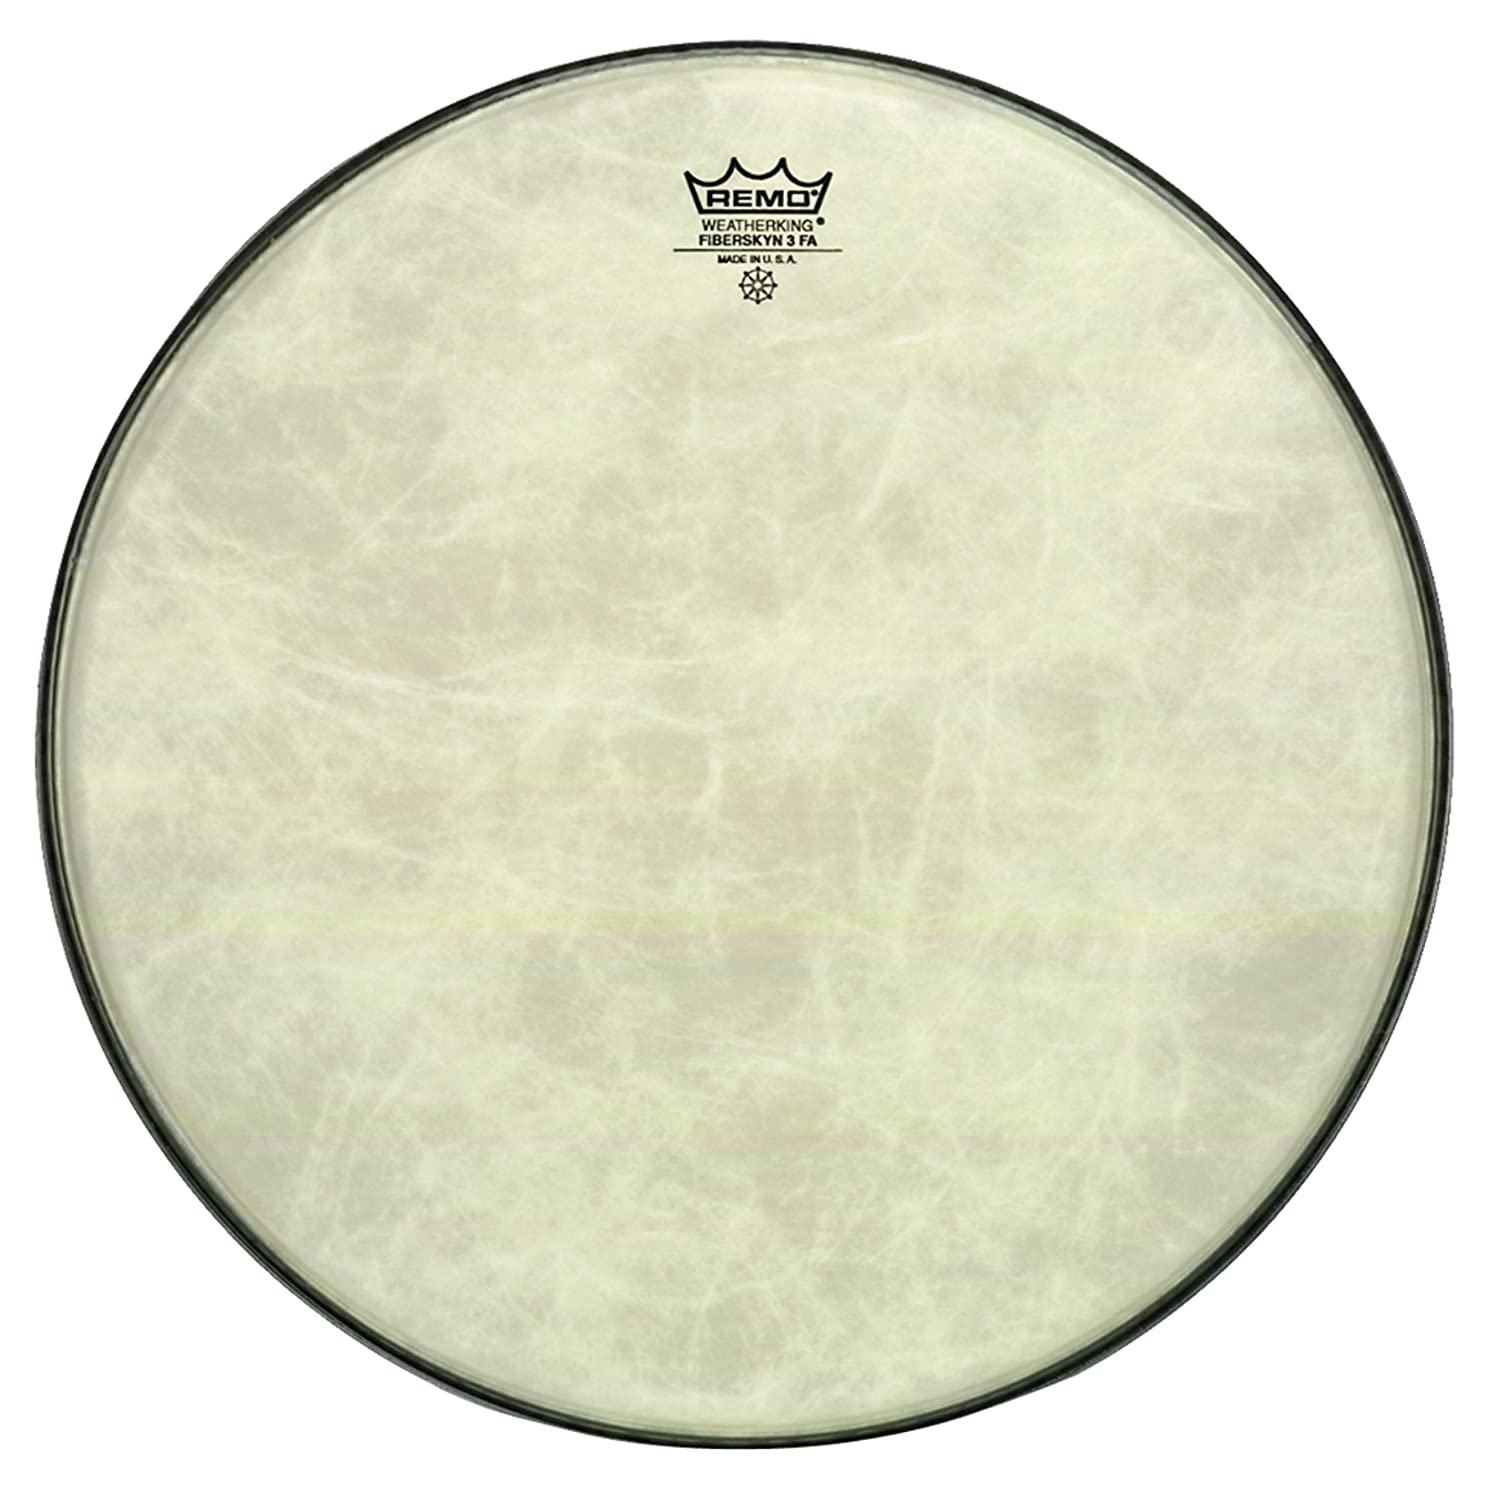 "Remo Diplomat Fiberskyn Drumhead, 16"" 813BypEQ-yL"